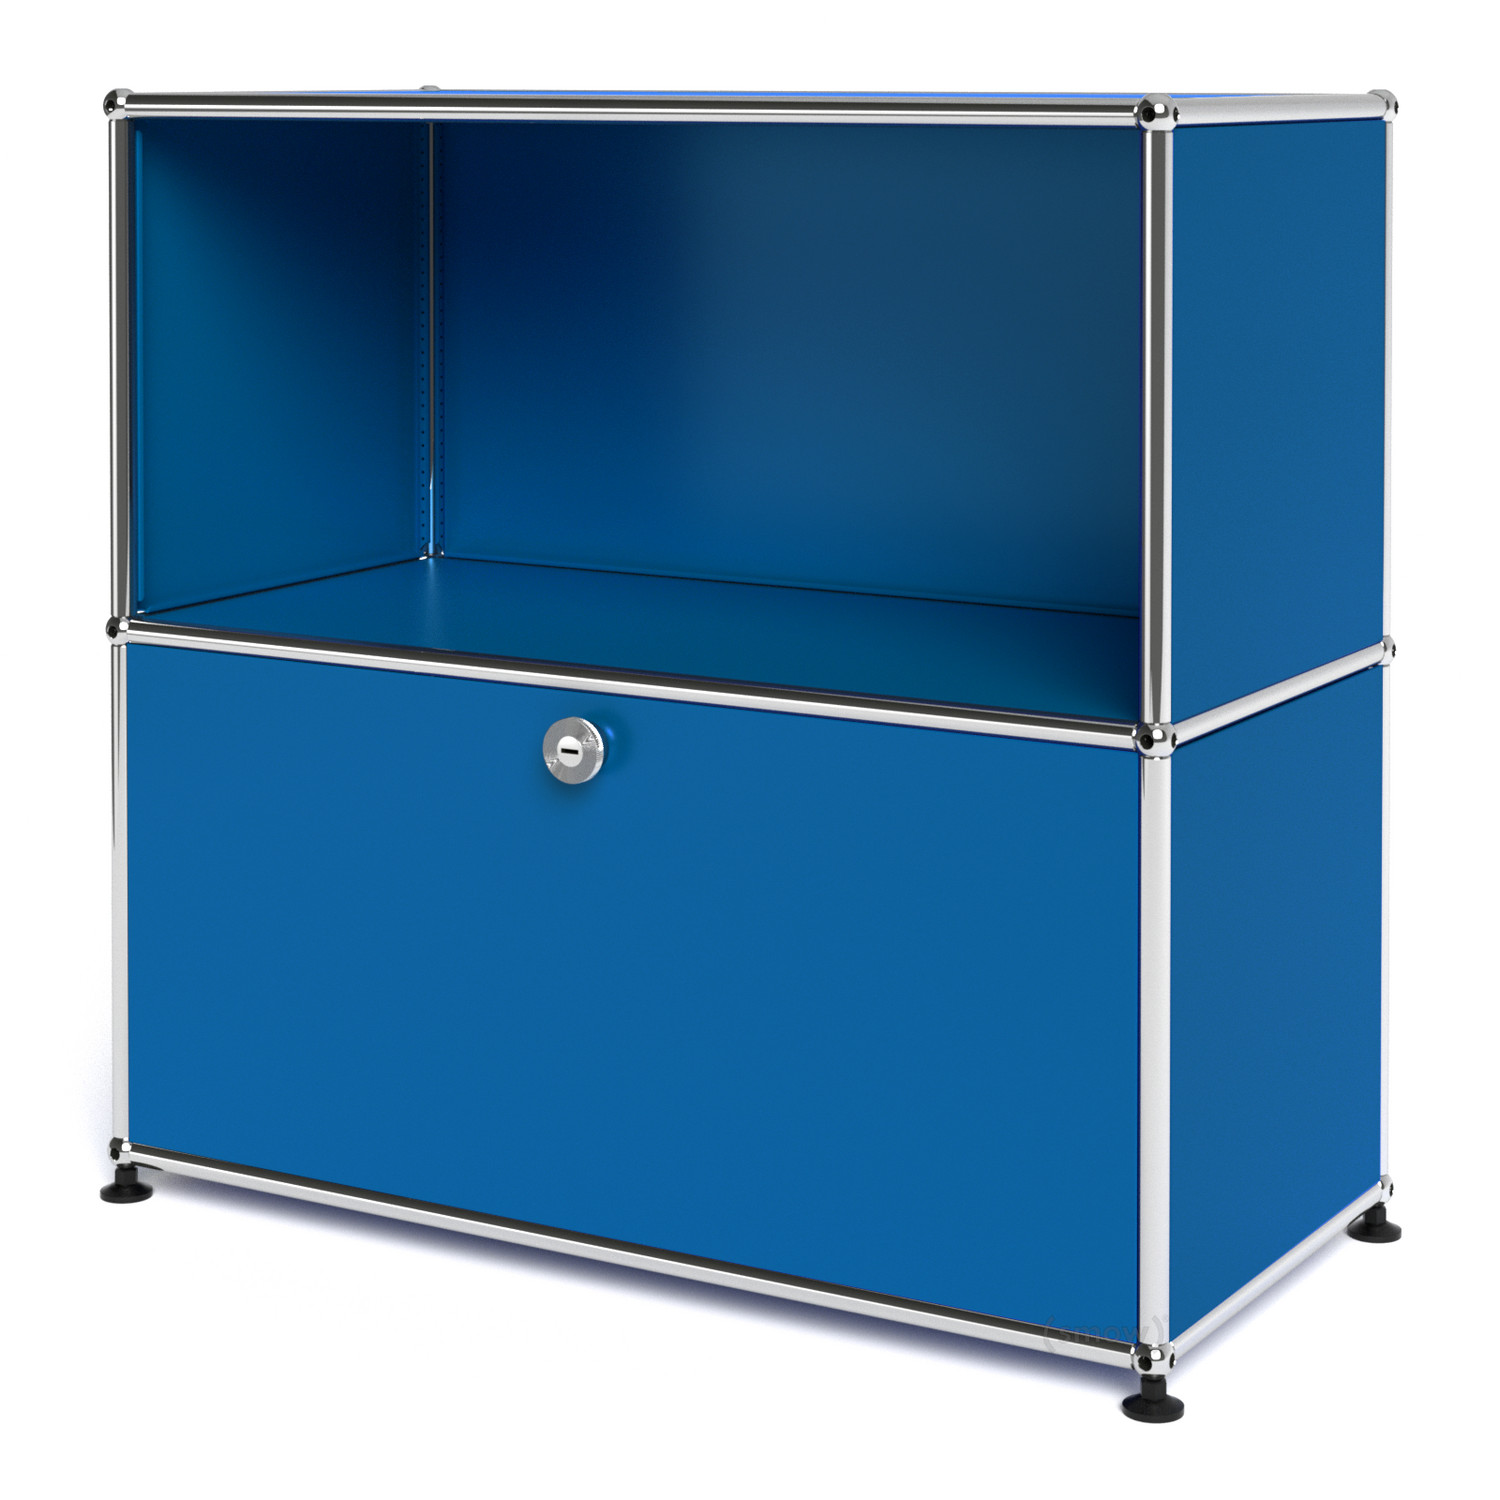 usm haller sideboard m with 1 drop down door gentian blue. Black Bedroom Furniture Sets. Home Design Ideas